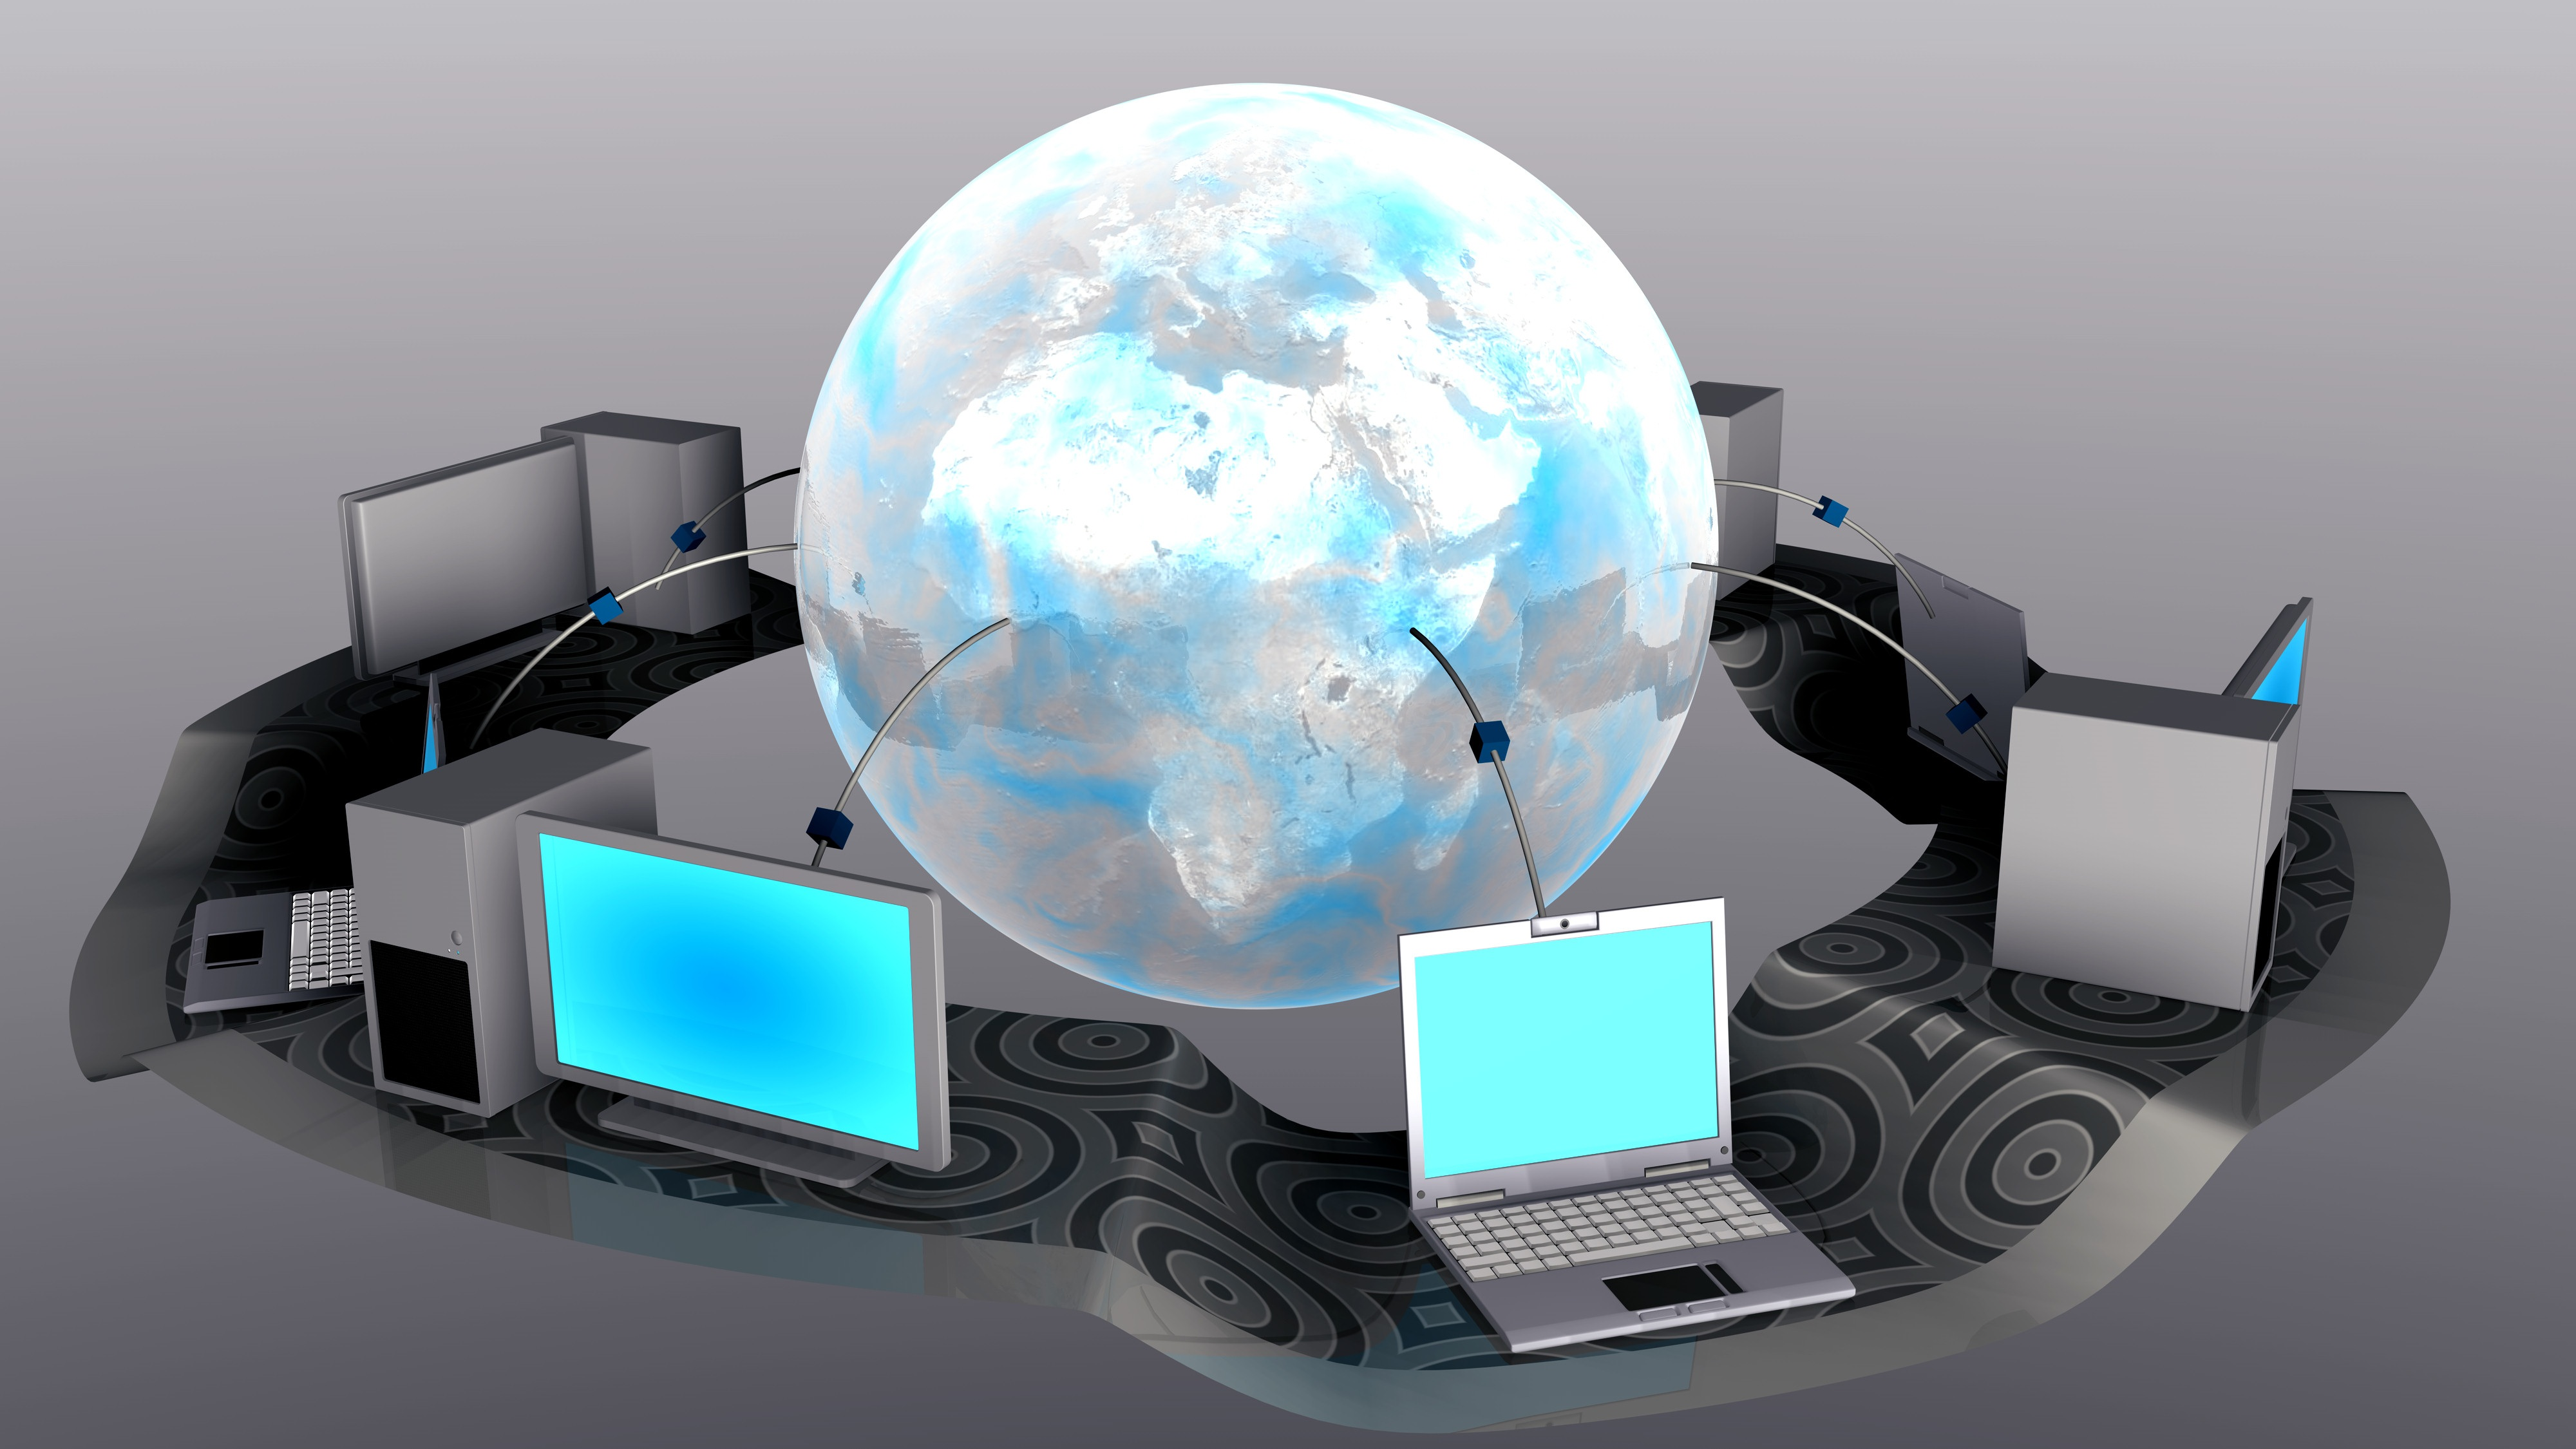 the evolution of information technology and the need to limited access to information But knowledge is not the same thing as information, and there is no question to my mind that the access to raw information provided by the internet is unparalleled and democratising.